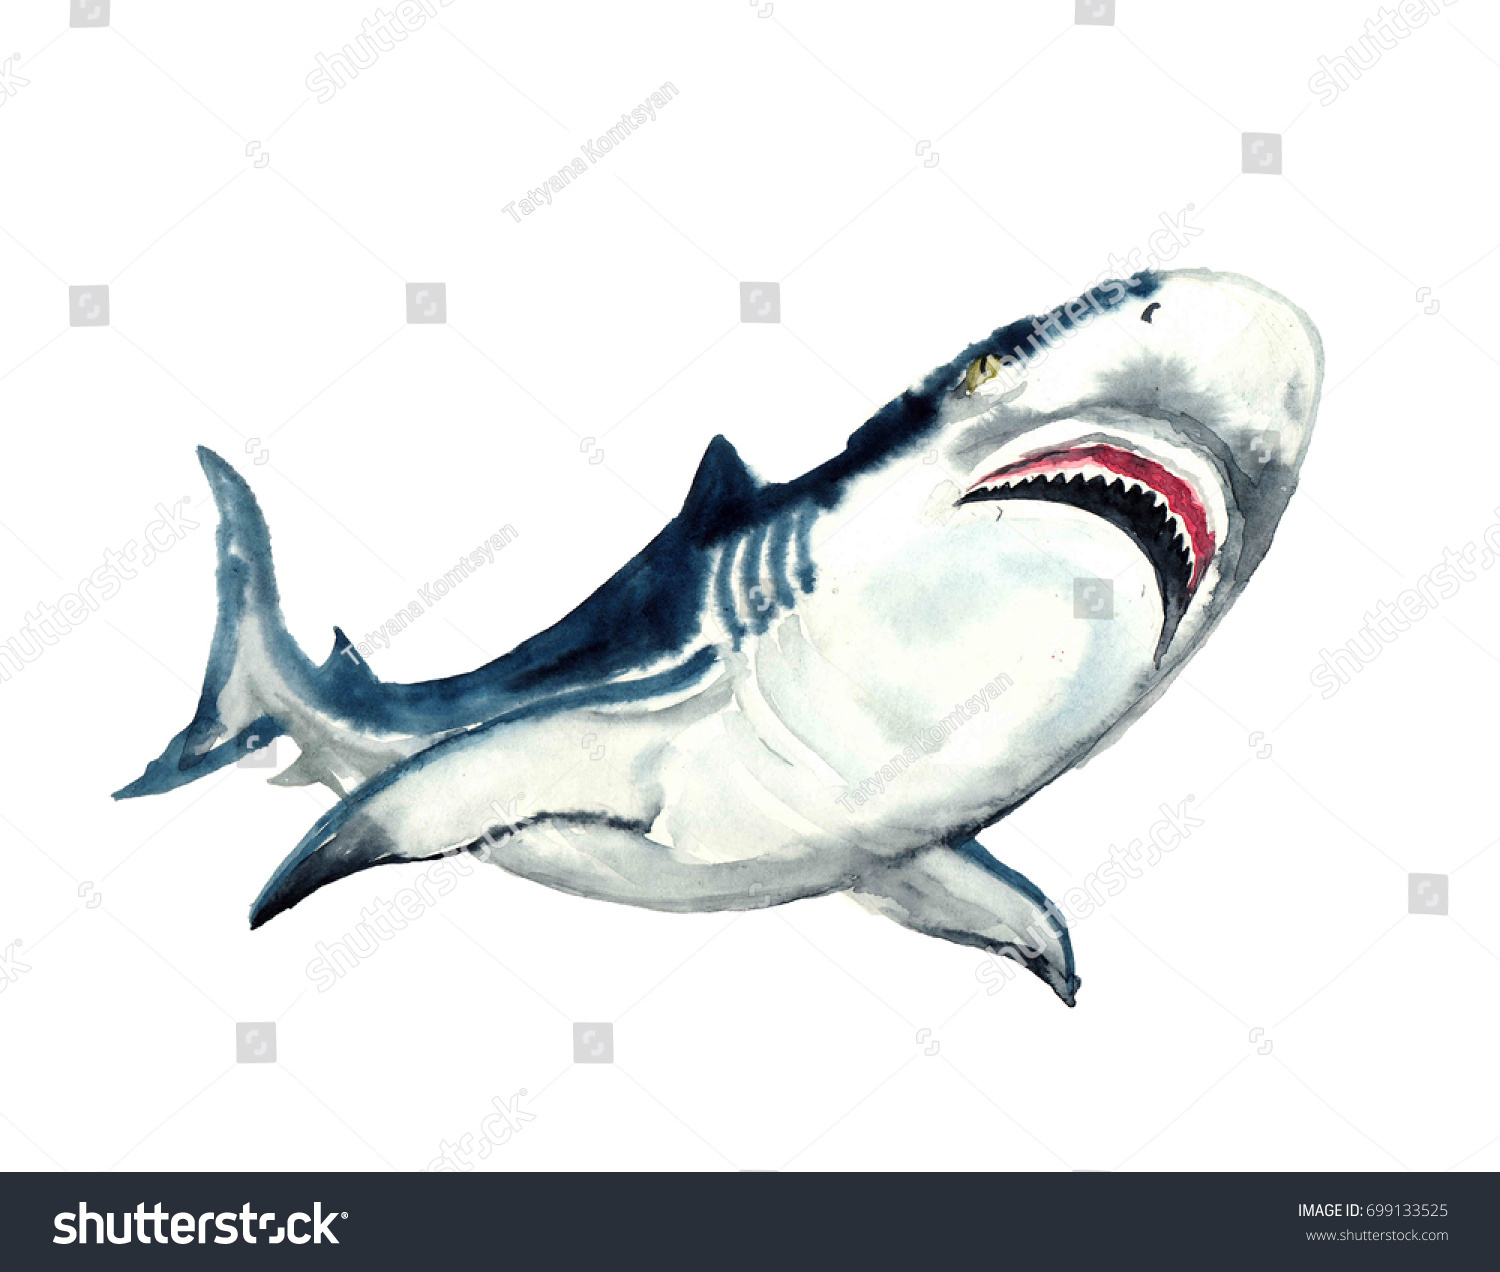 watercolor shark on white background watercolor stock illustration